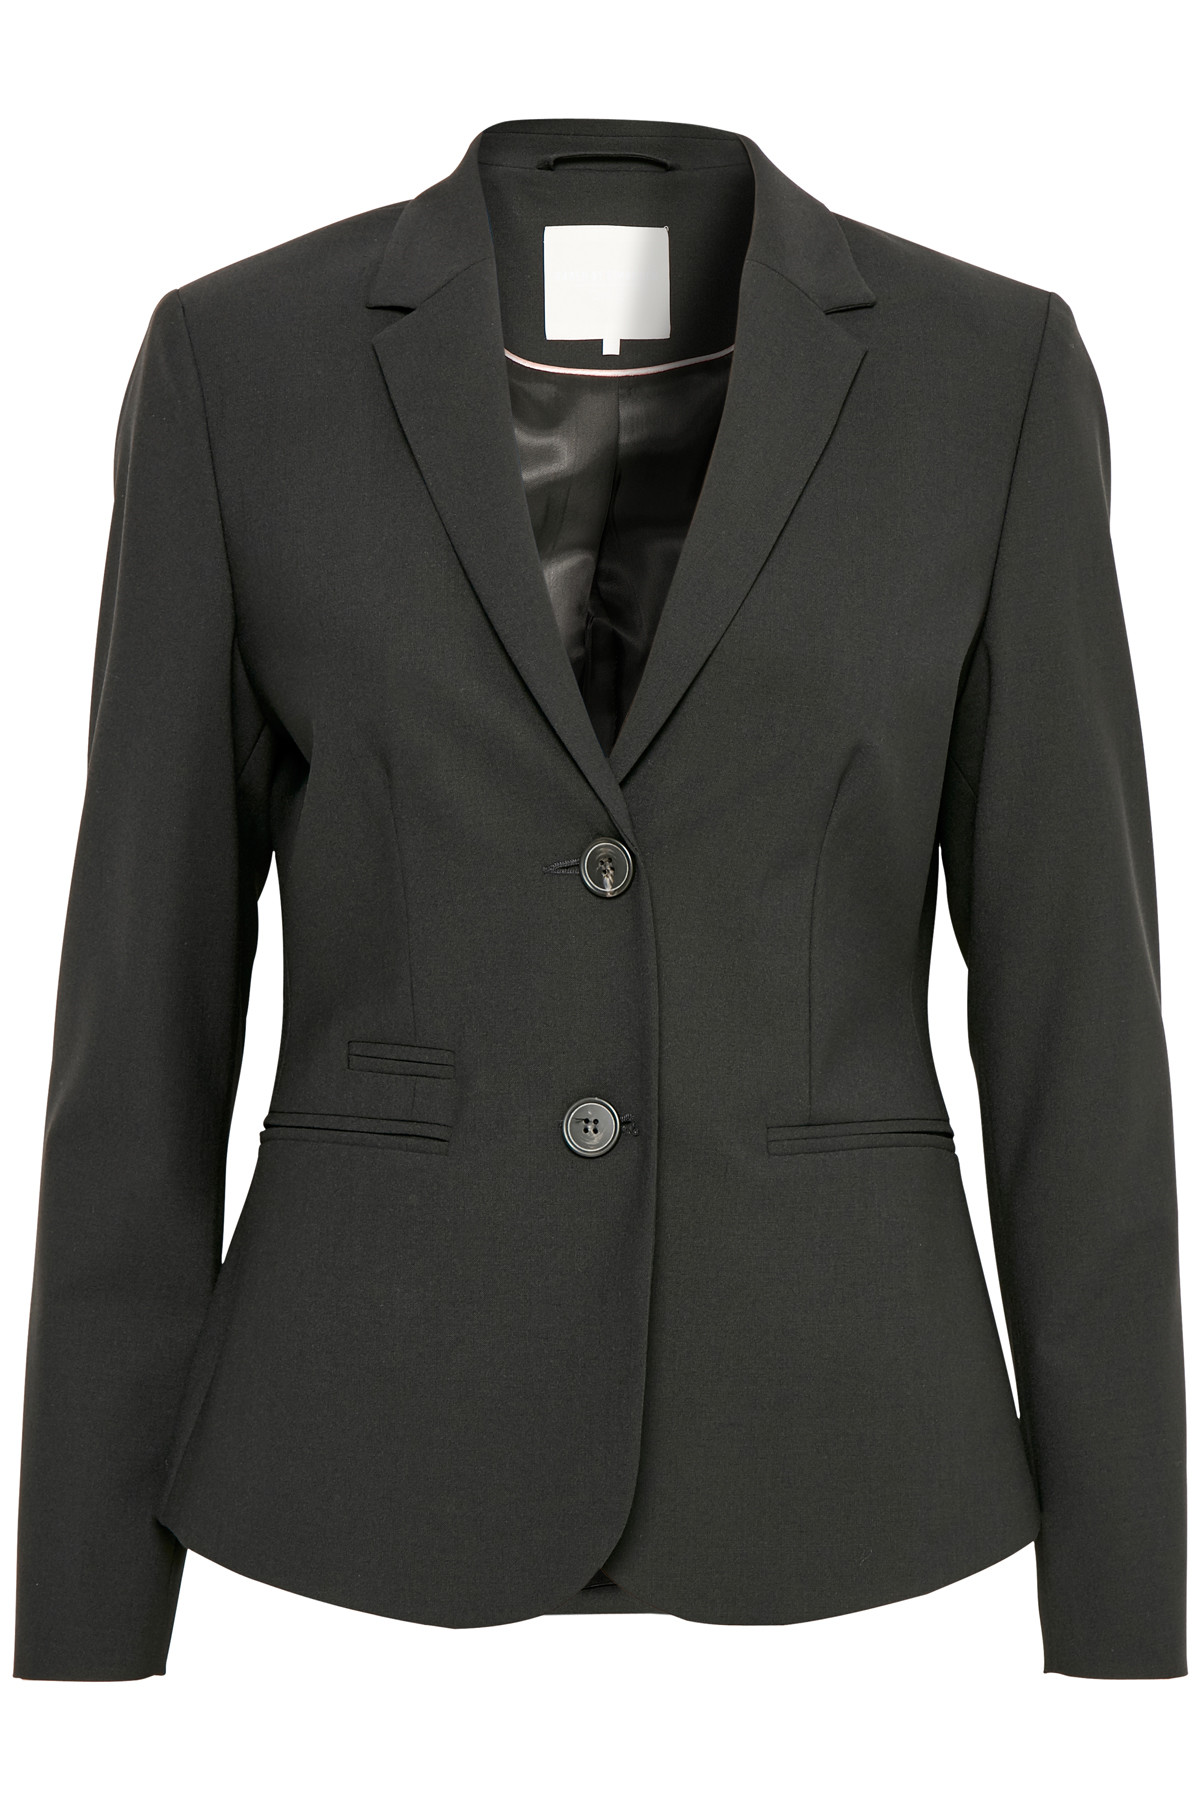 Image of   KAREN BY SIMONSEN SYDNEY BLAZER 10102001 (Black 40999, 36)